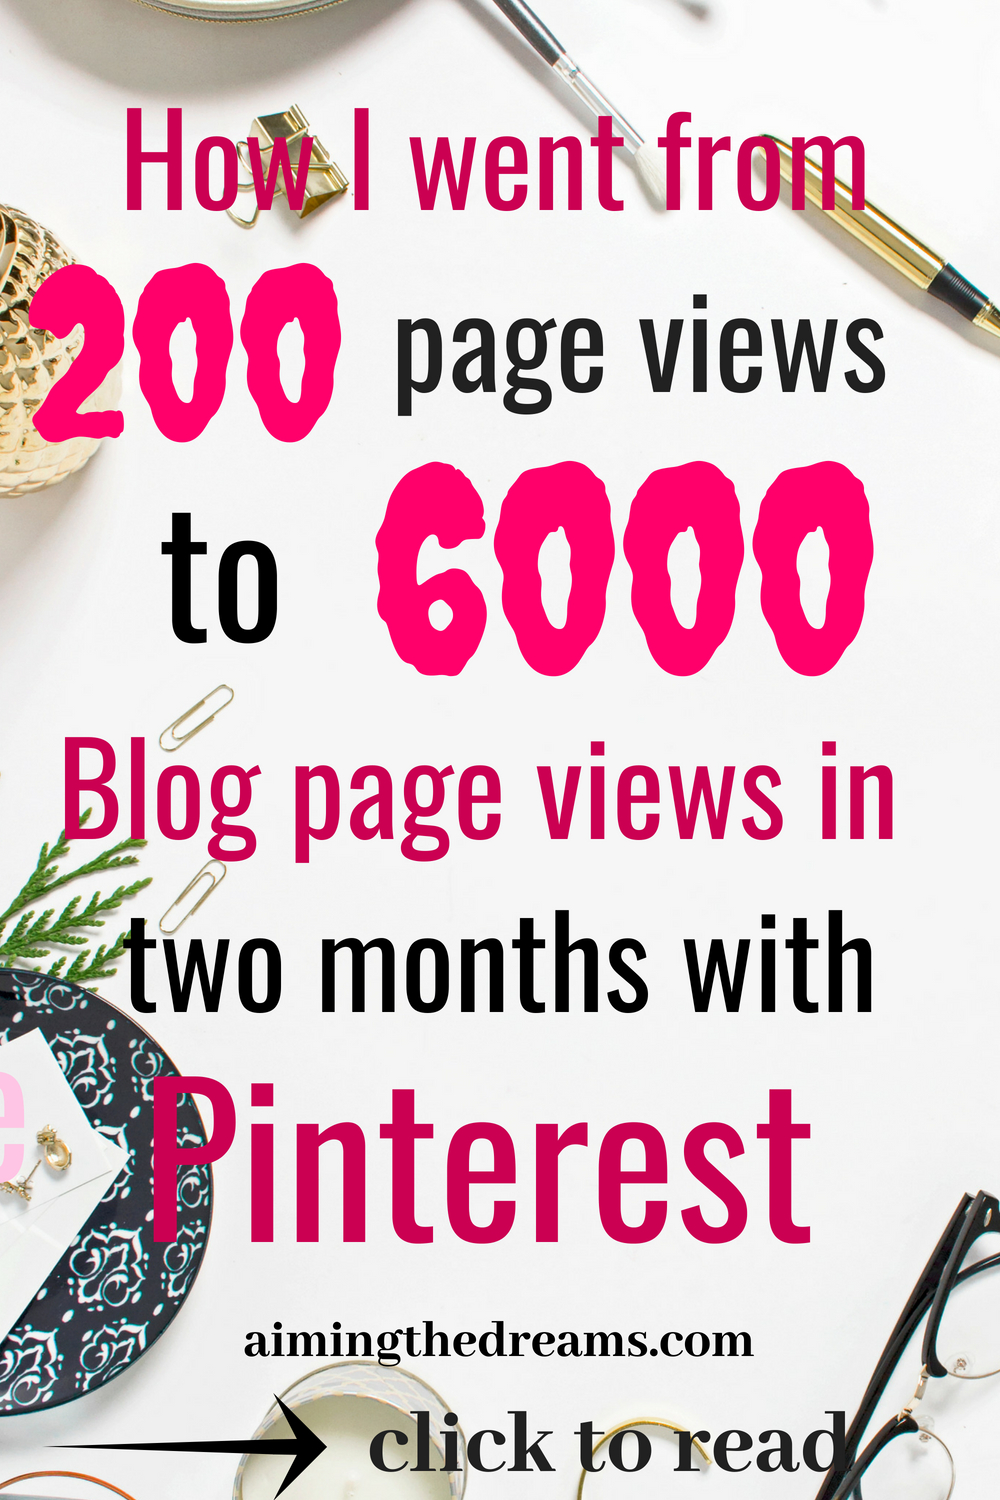 #Grow your #blog #traffic with #Pinterest. Pinterest is a goldmine of #traffic for new #bloggers. It helps in increasing #pageviews tremendously.